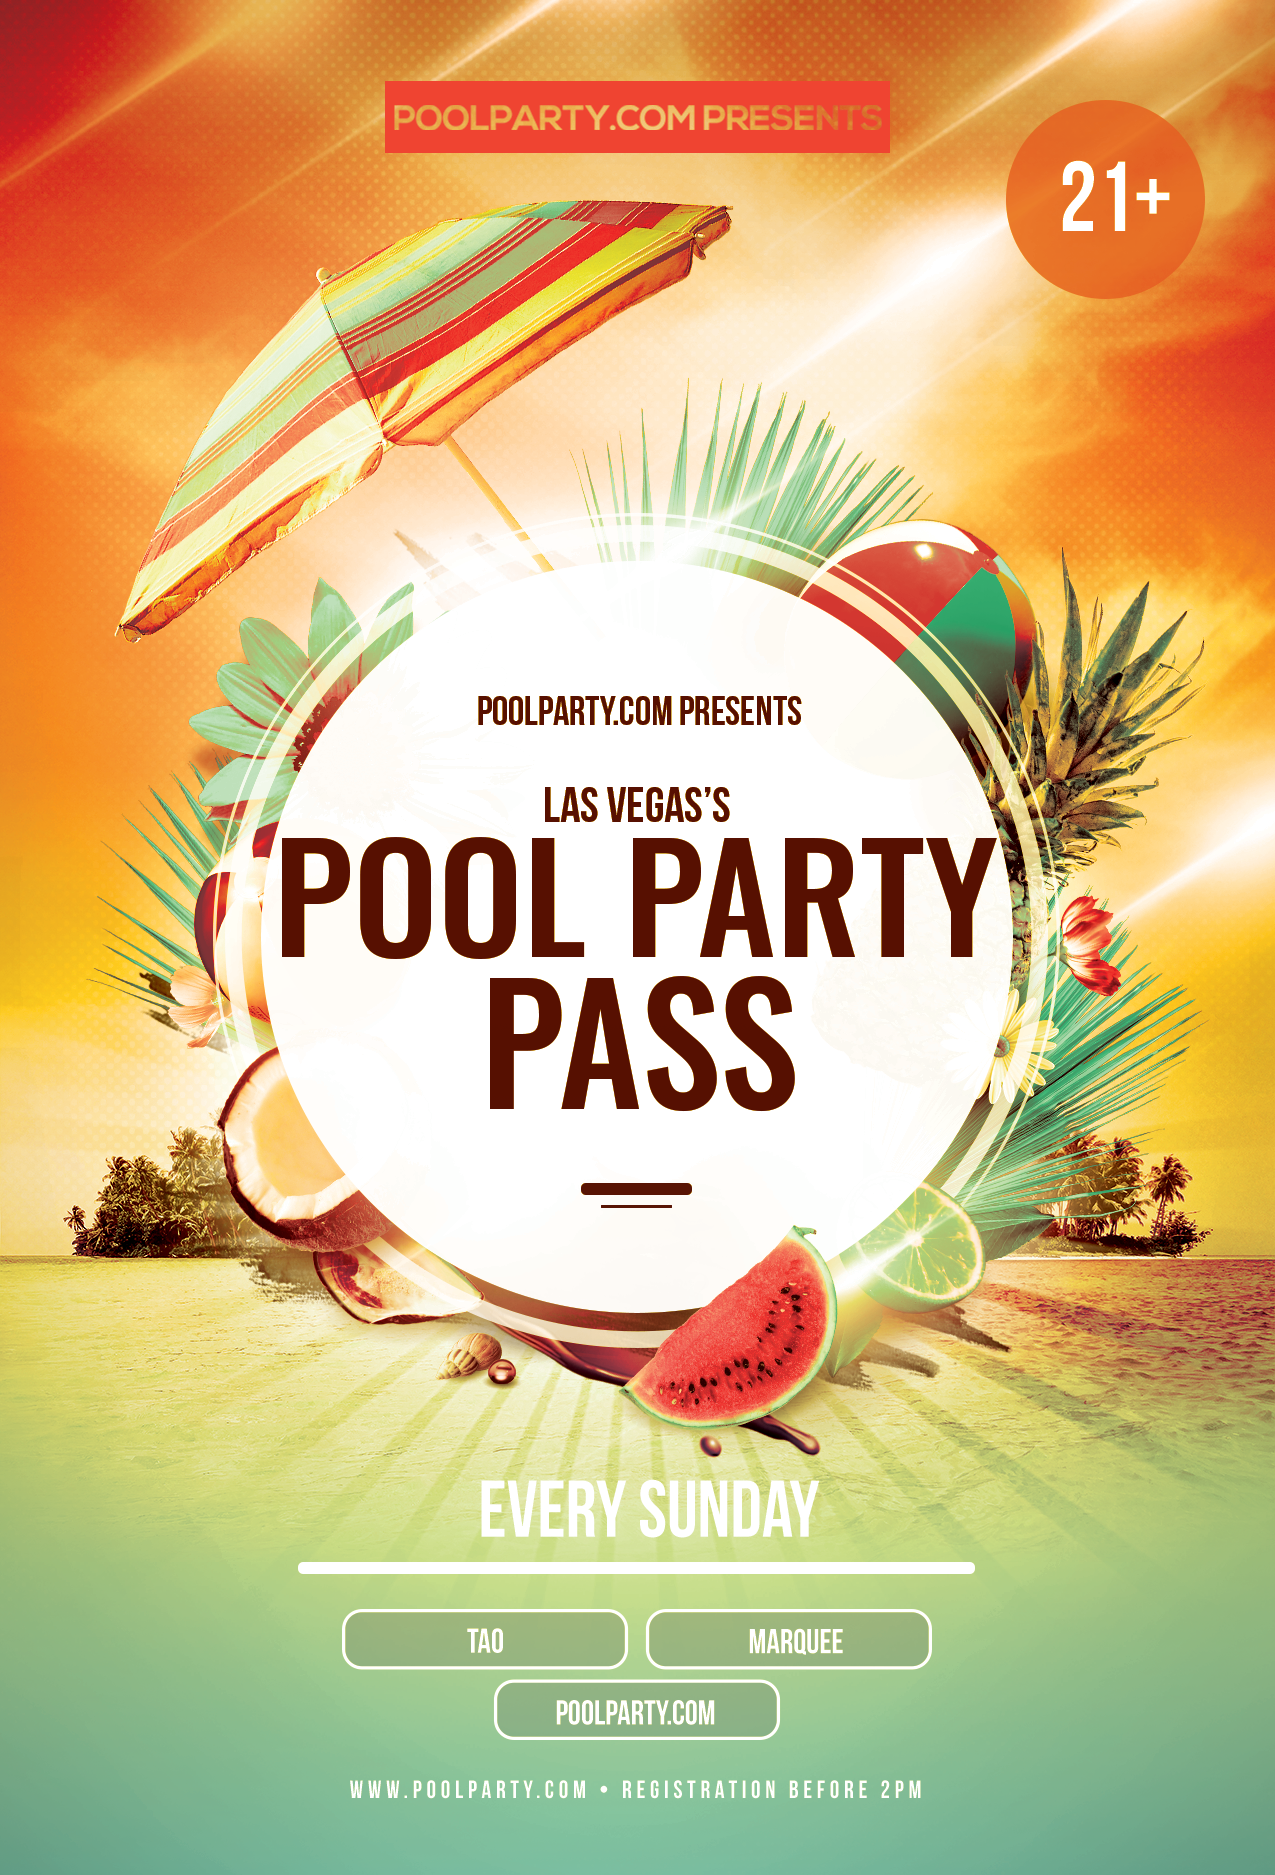 Sunday's Pool Party Pass (April 19th 2020)